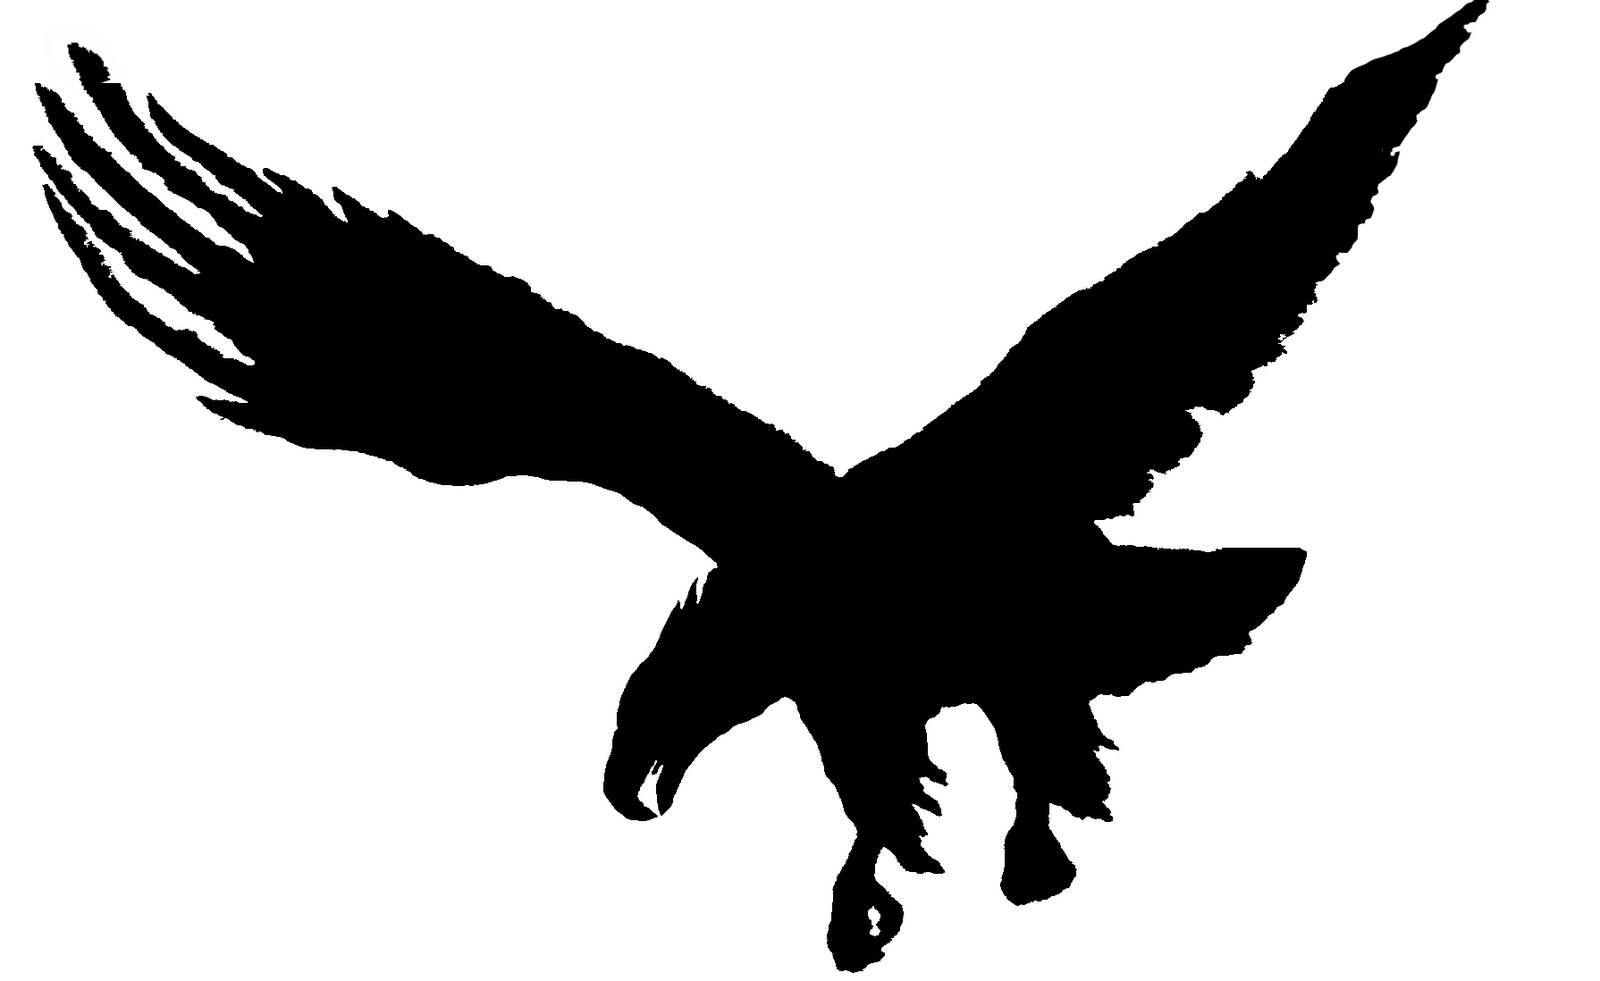 eagle silhouette american bald eagle silhouette at getdrawings free download eagle silhouette